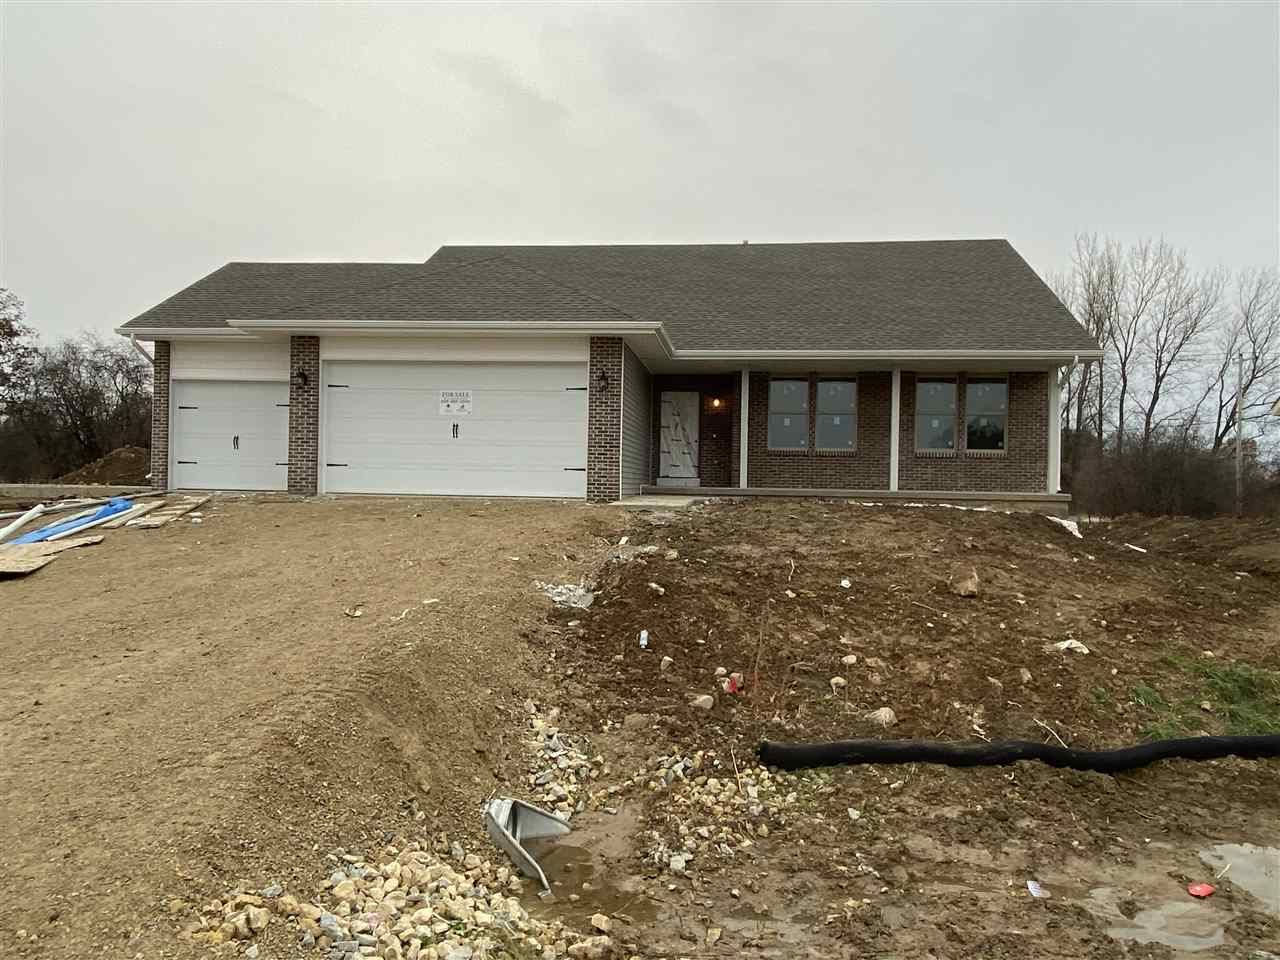 811 E Superior Dr, Edgerton, WI 53534 - MLS#: 1865454